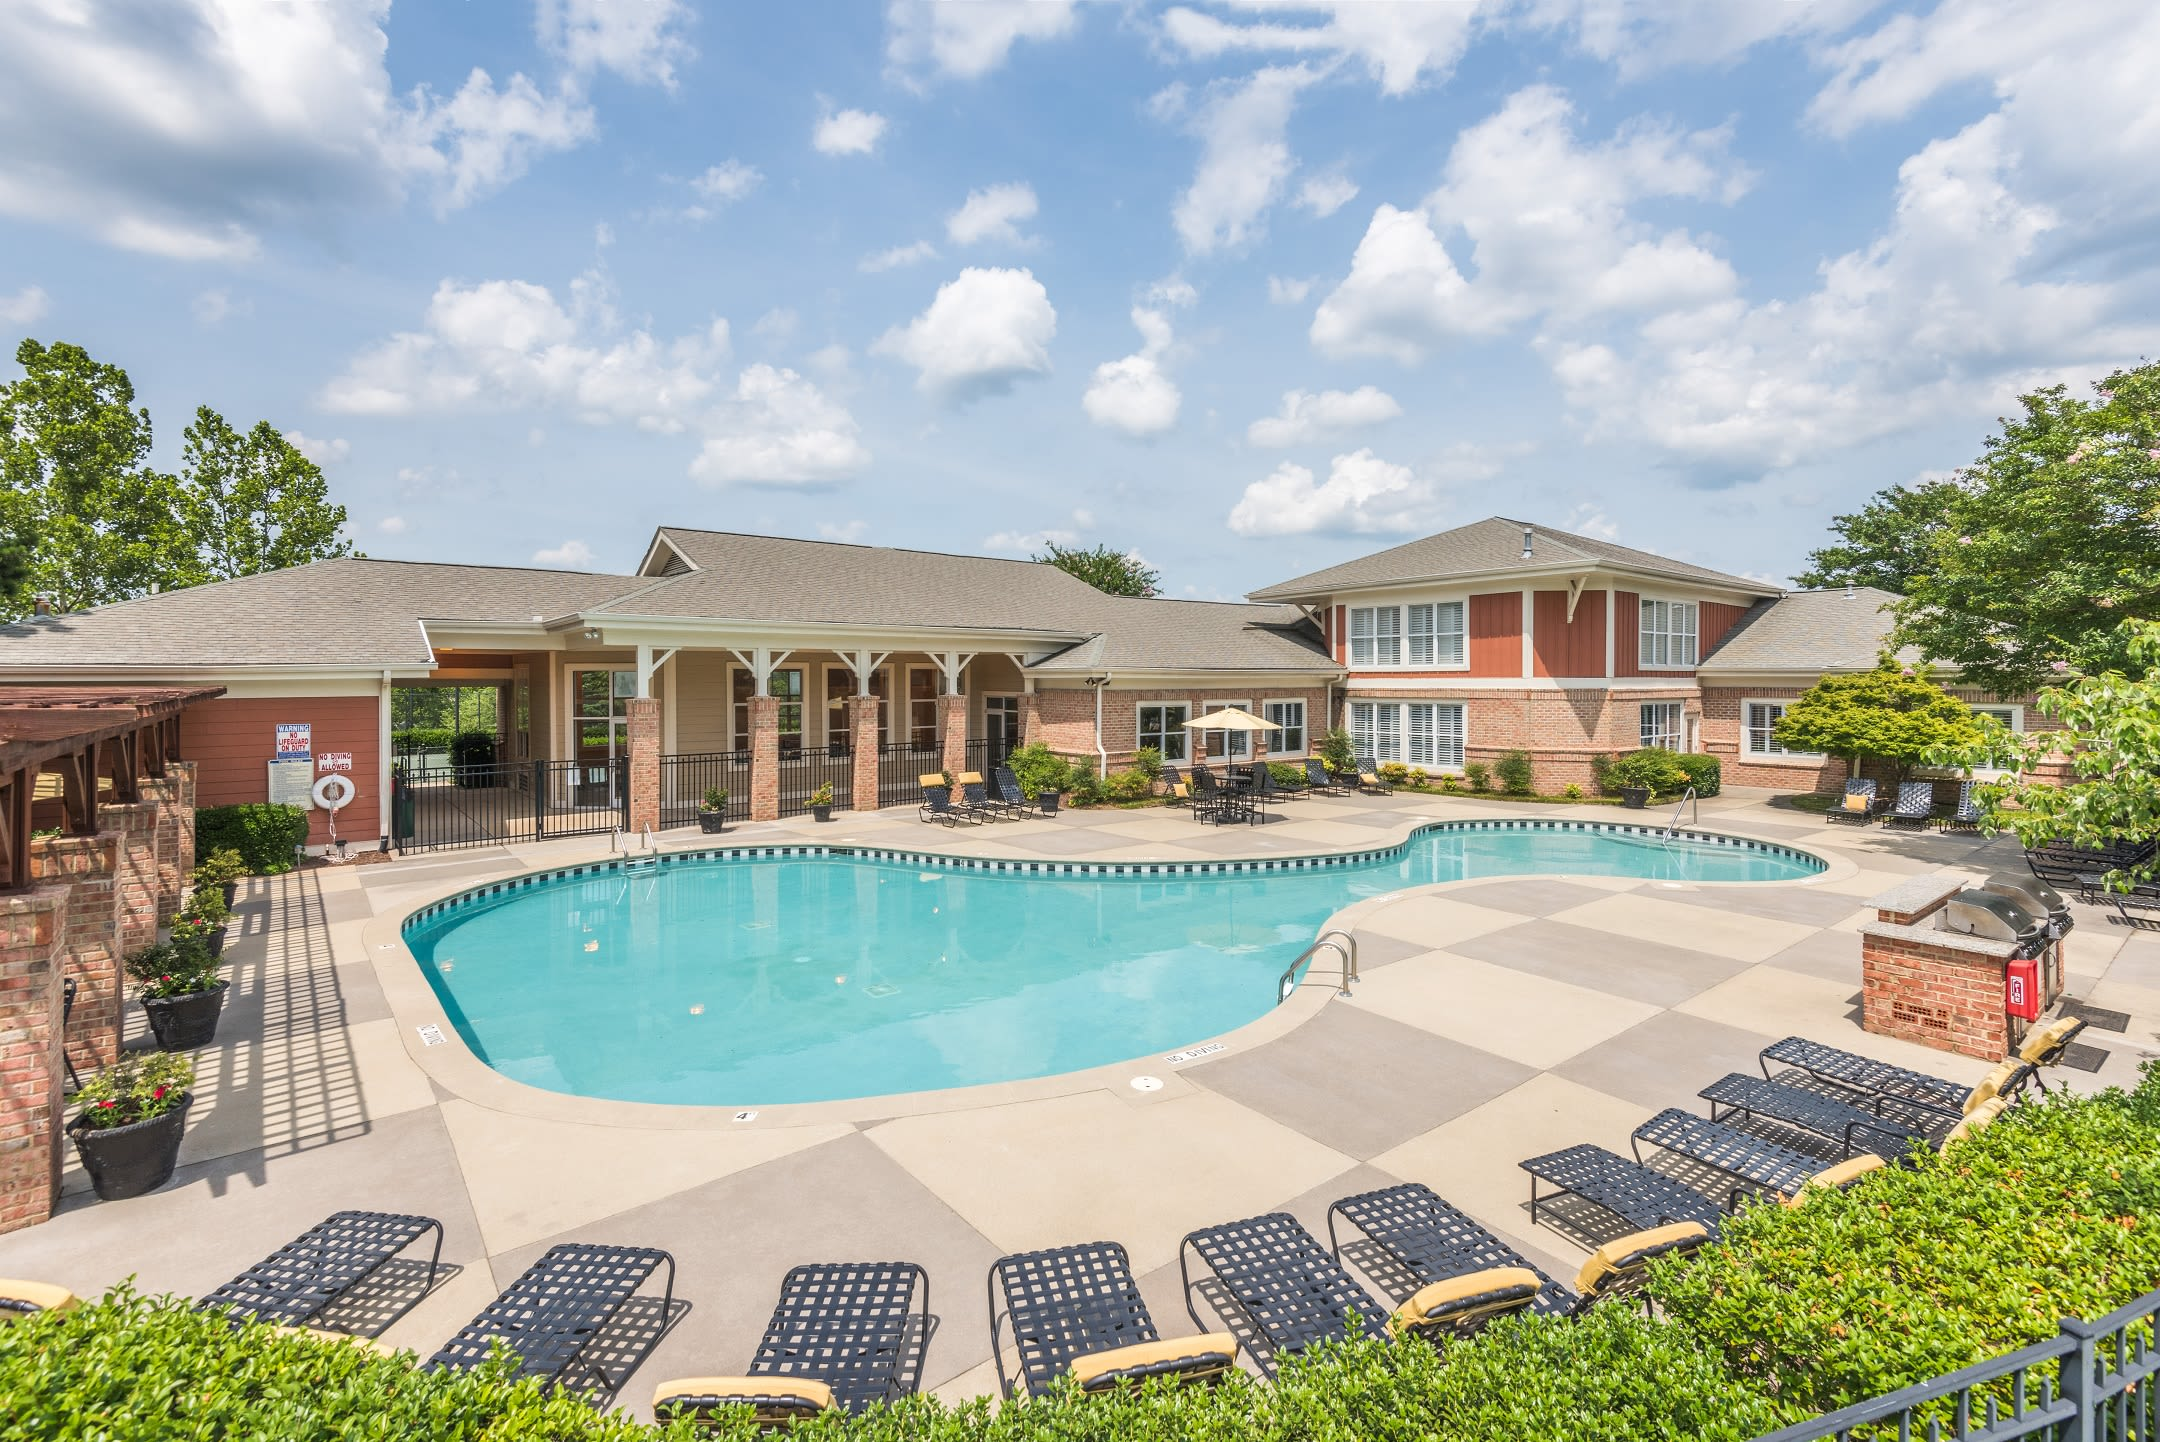 200 East offers an indoor swimming pool in Durham, NC